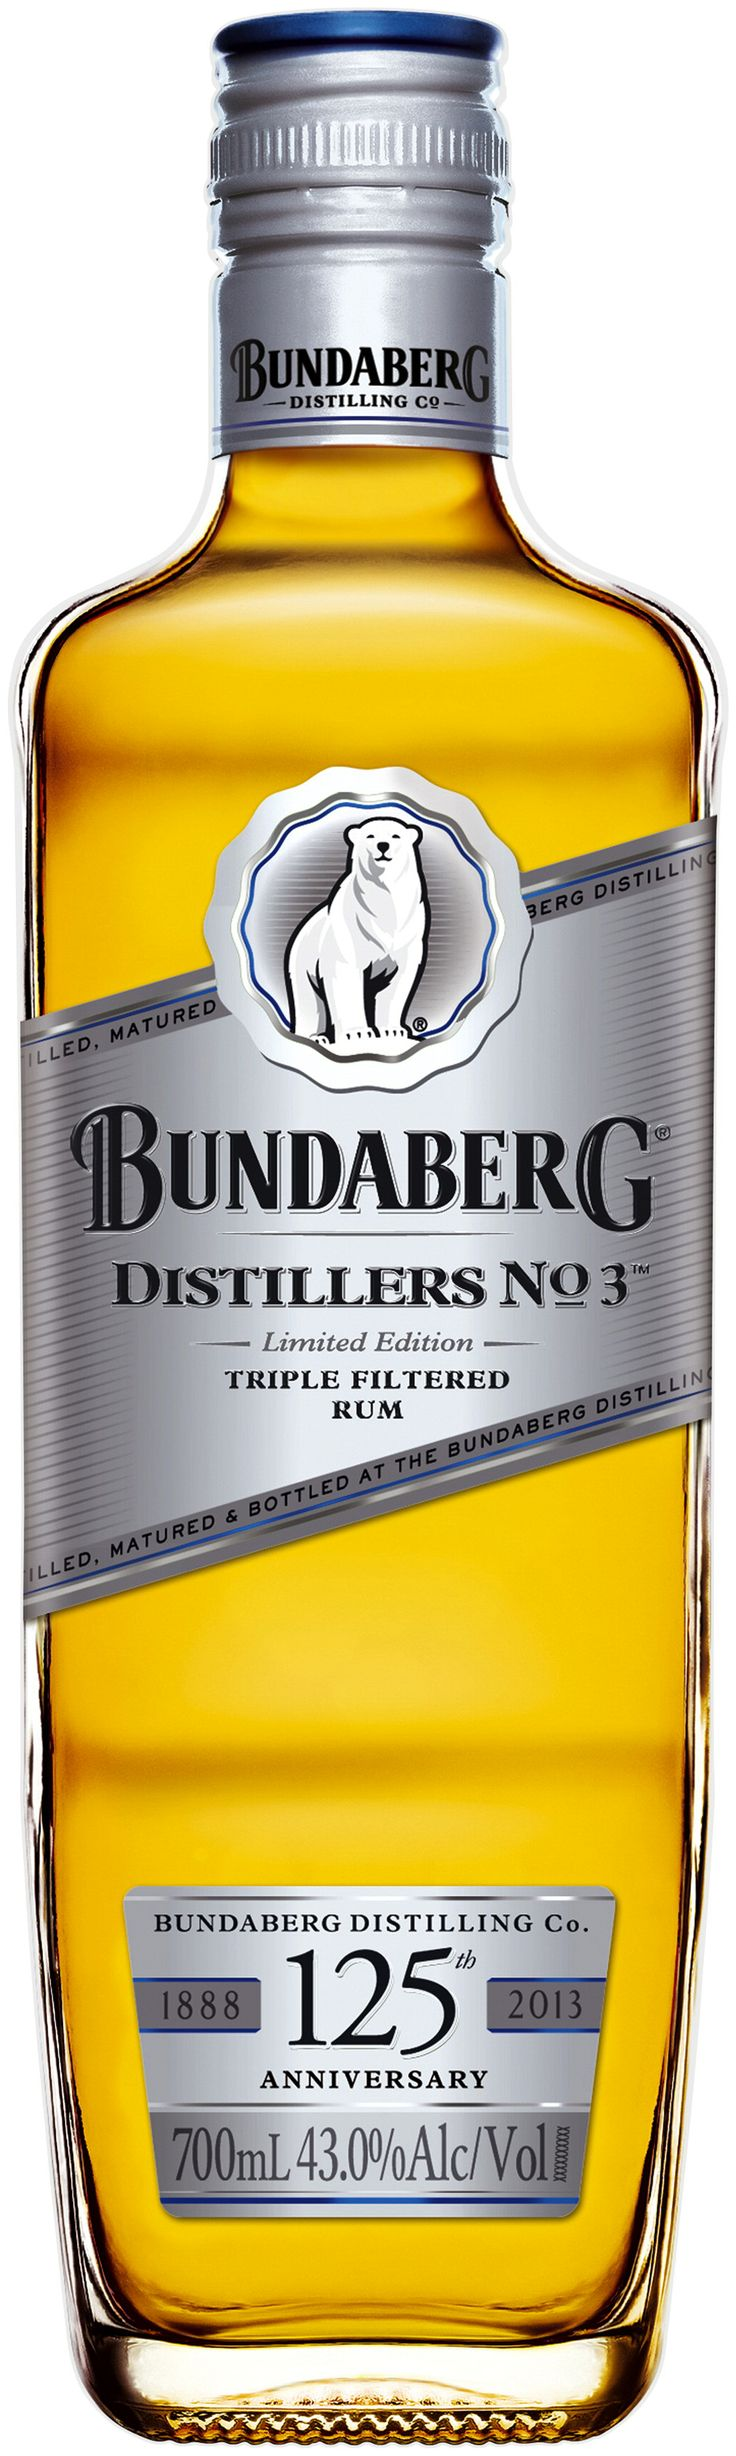 RUM! Have you savoured a bottle of the Bundaberg Rum Distillers No 3? Its celebrating the 125th Anniversary of Bundaberg Rum! (And we are sure in a few years time, collectors will be searching for this!)